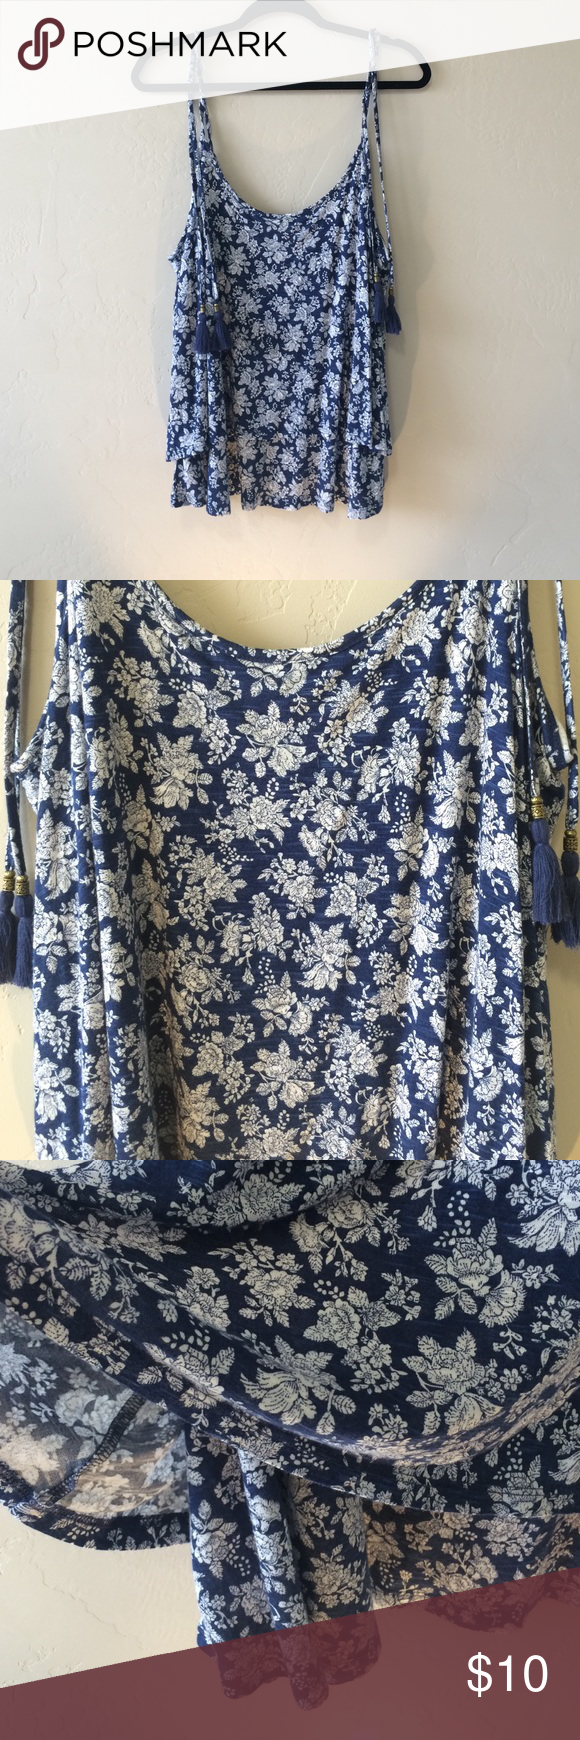 Floral tank with tassels. Needed a flowy tank to wear over a swimsuit however this ended up being too large for me (typically a L to XL in tops). Would be cute paired with jeans and wedges. The straps tie at the top and tassels hang from there. The bottom is two layers. This could be a very flattering top. Never worn. Smoke free home  Forever 21 Tops Tank Tops